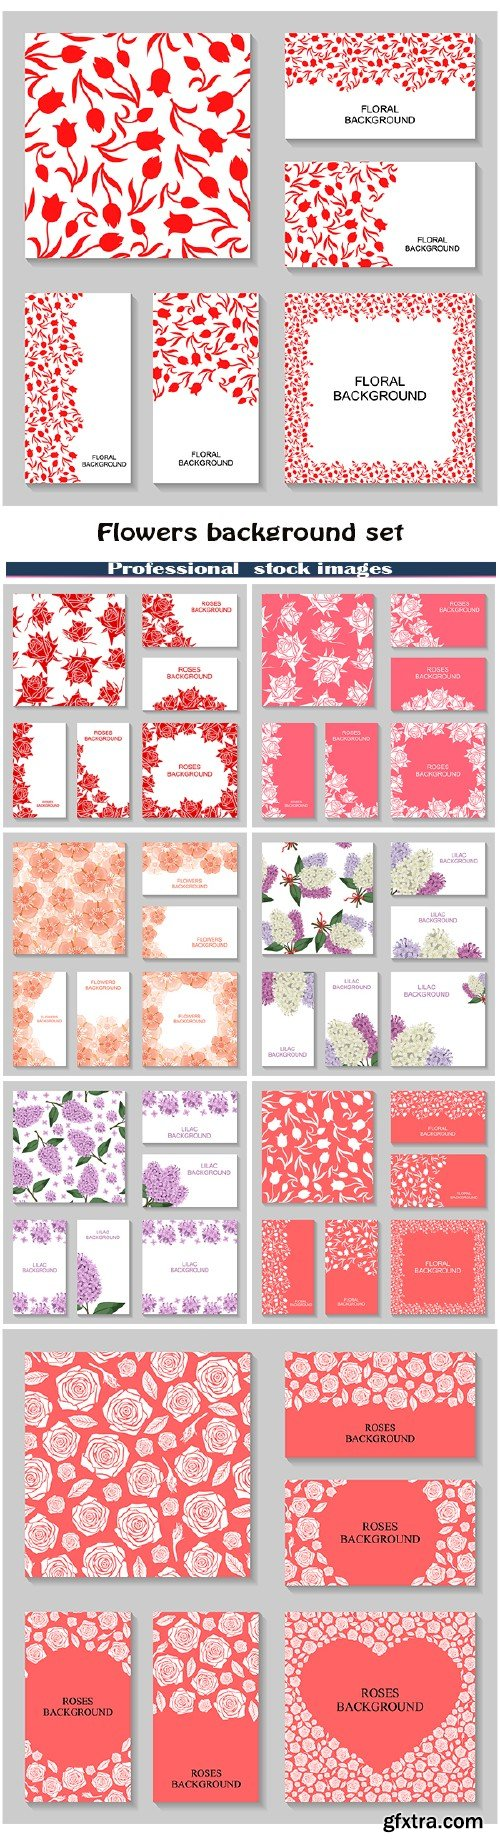 Flowers background set